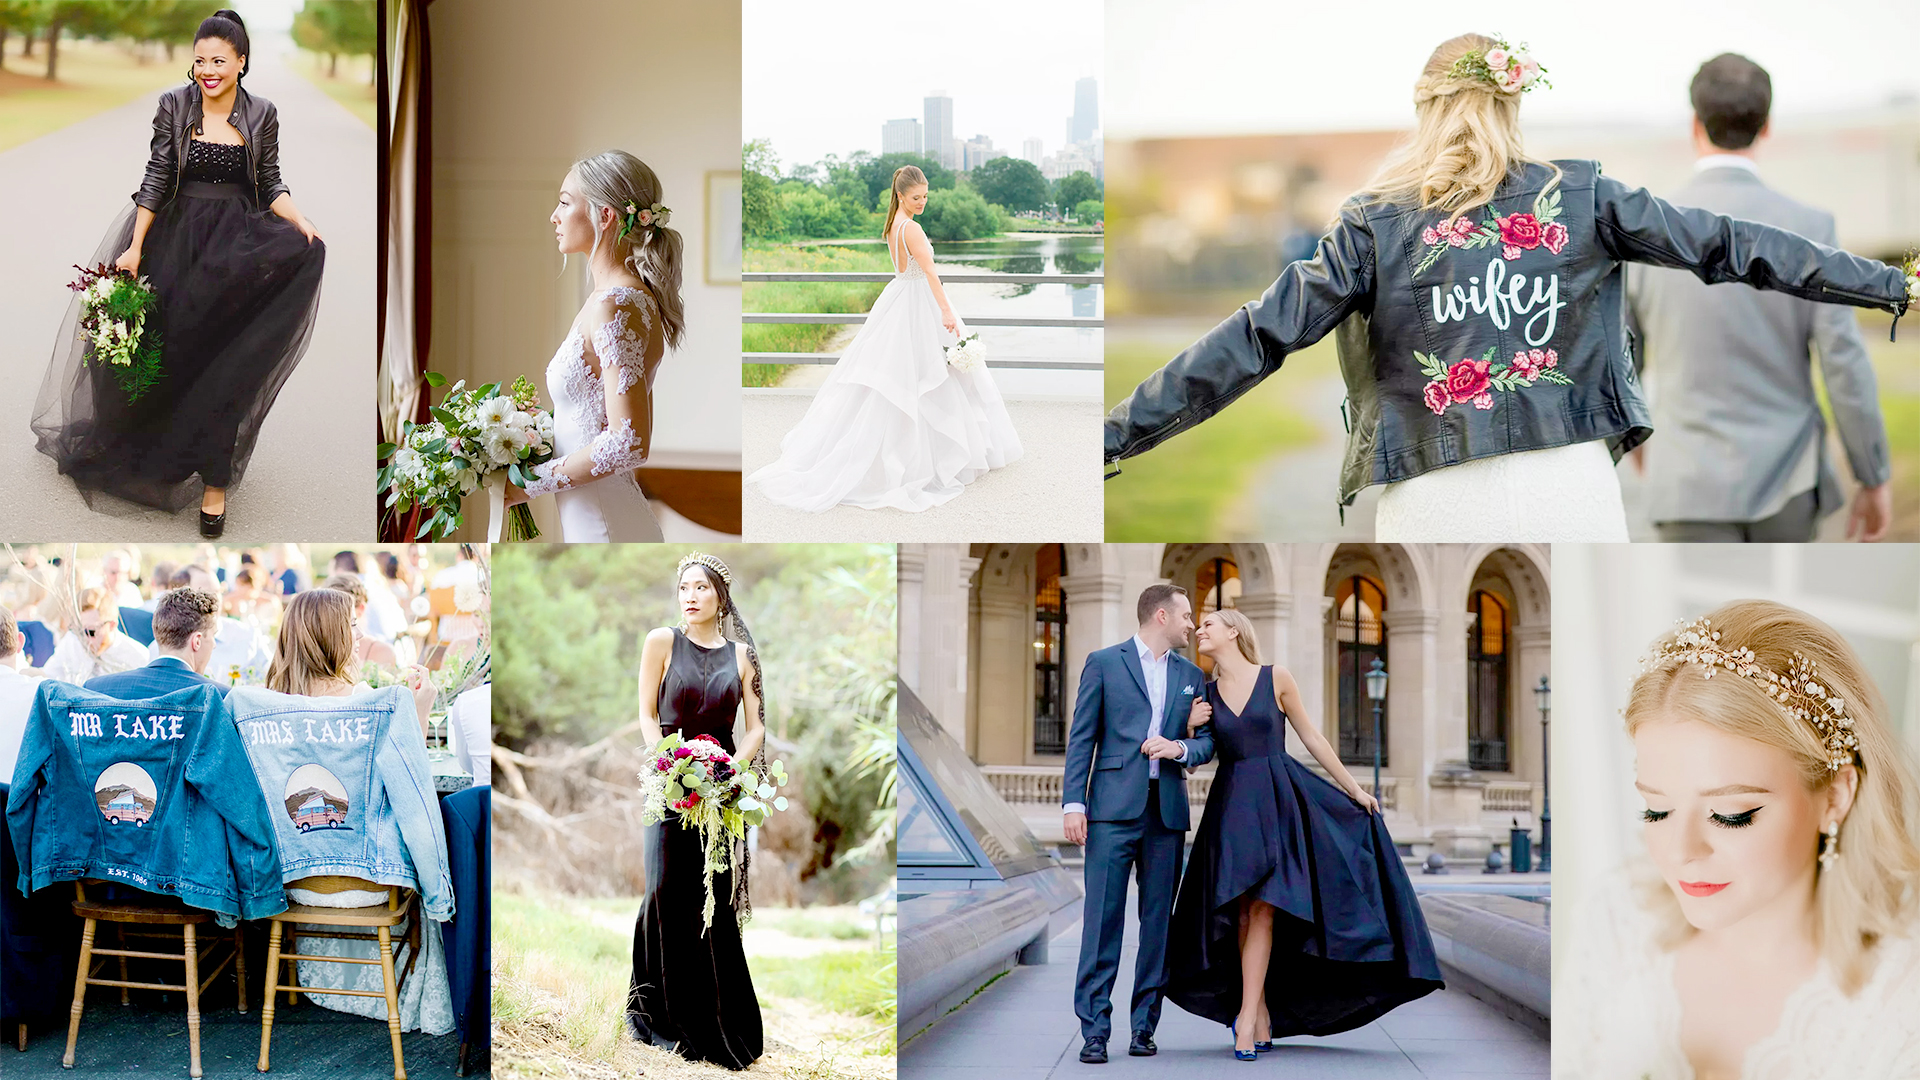 Cool-Girl Style Trends And How To Actually Pull Them Off   Look effortlessly chic on your wedding day